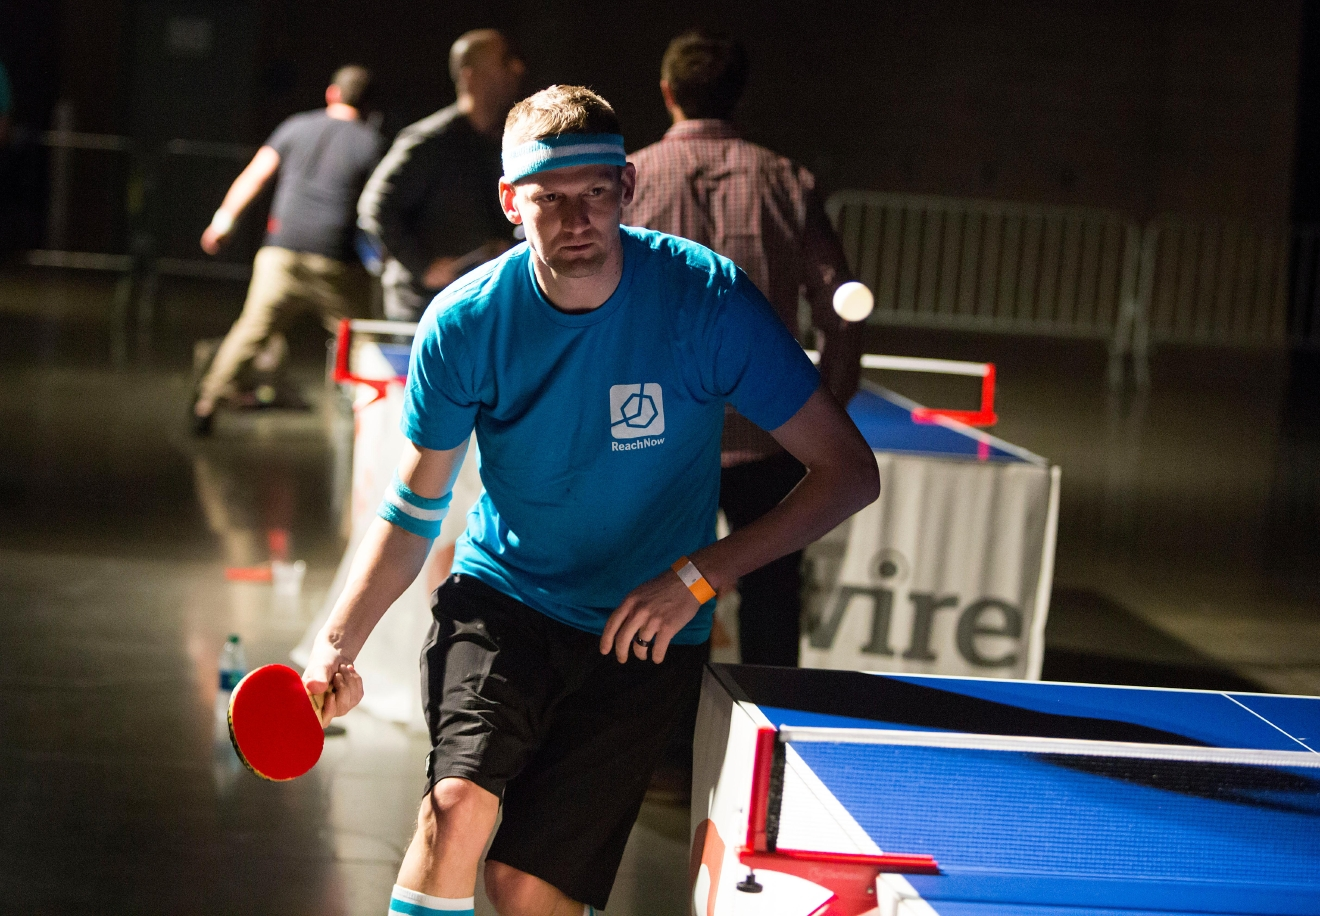 James Rachner, representing his company Reach Now, returns the ping pong ball during a friendly game against a coworker at the 6th annual Geekwire Bash at the CenturyLink Event Center. (Sy Bean / Seattle Refined)